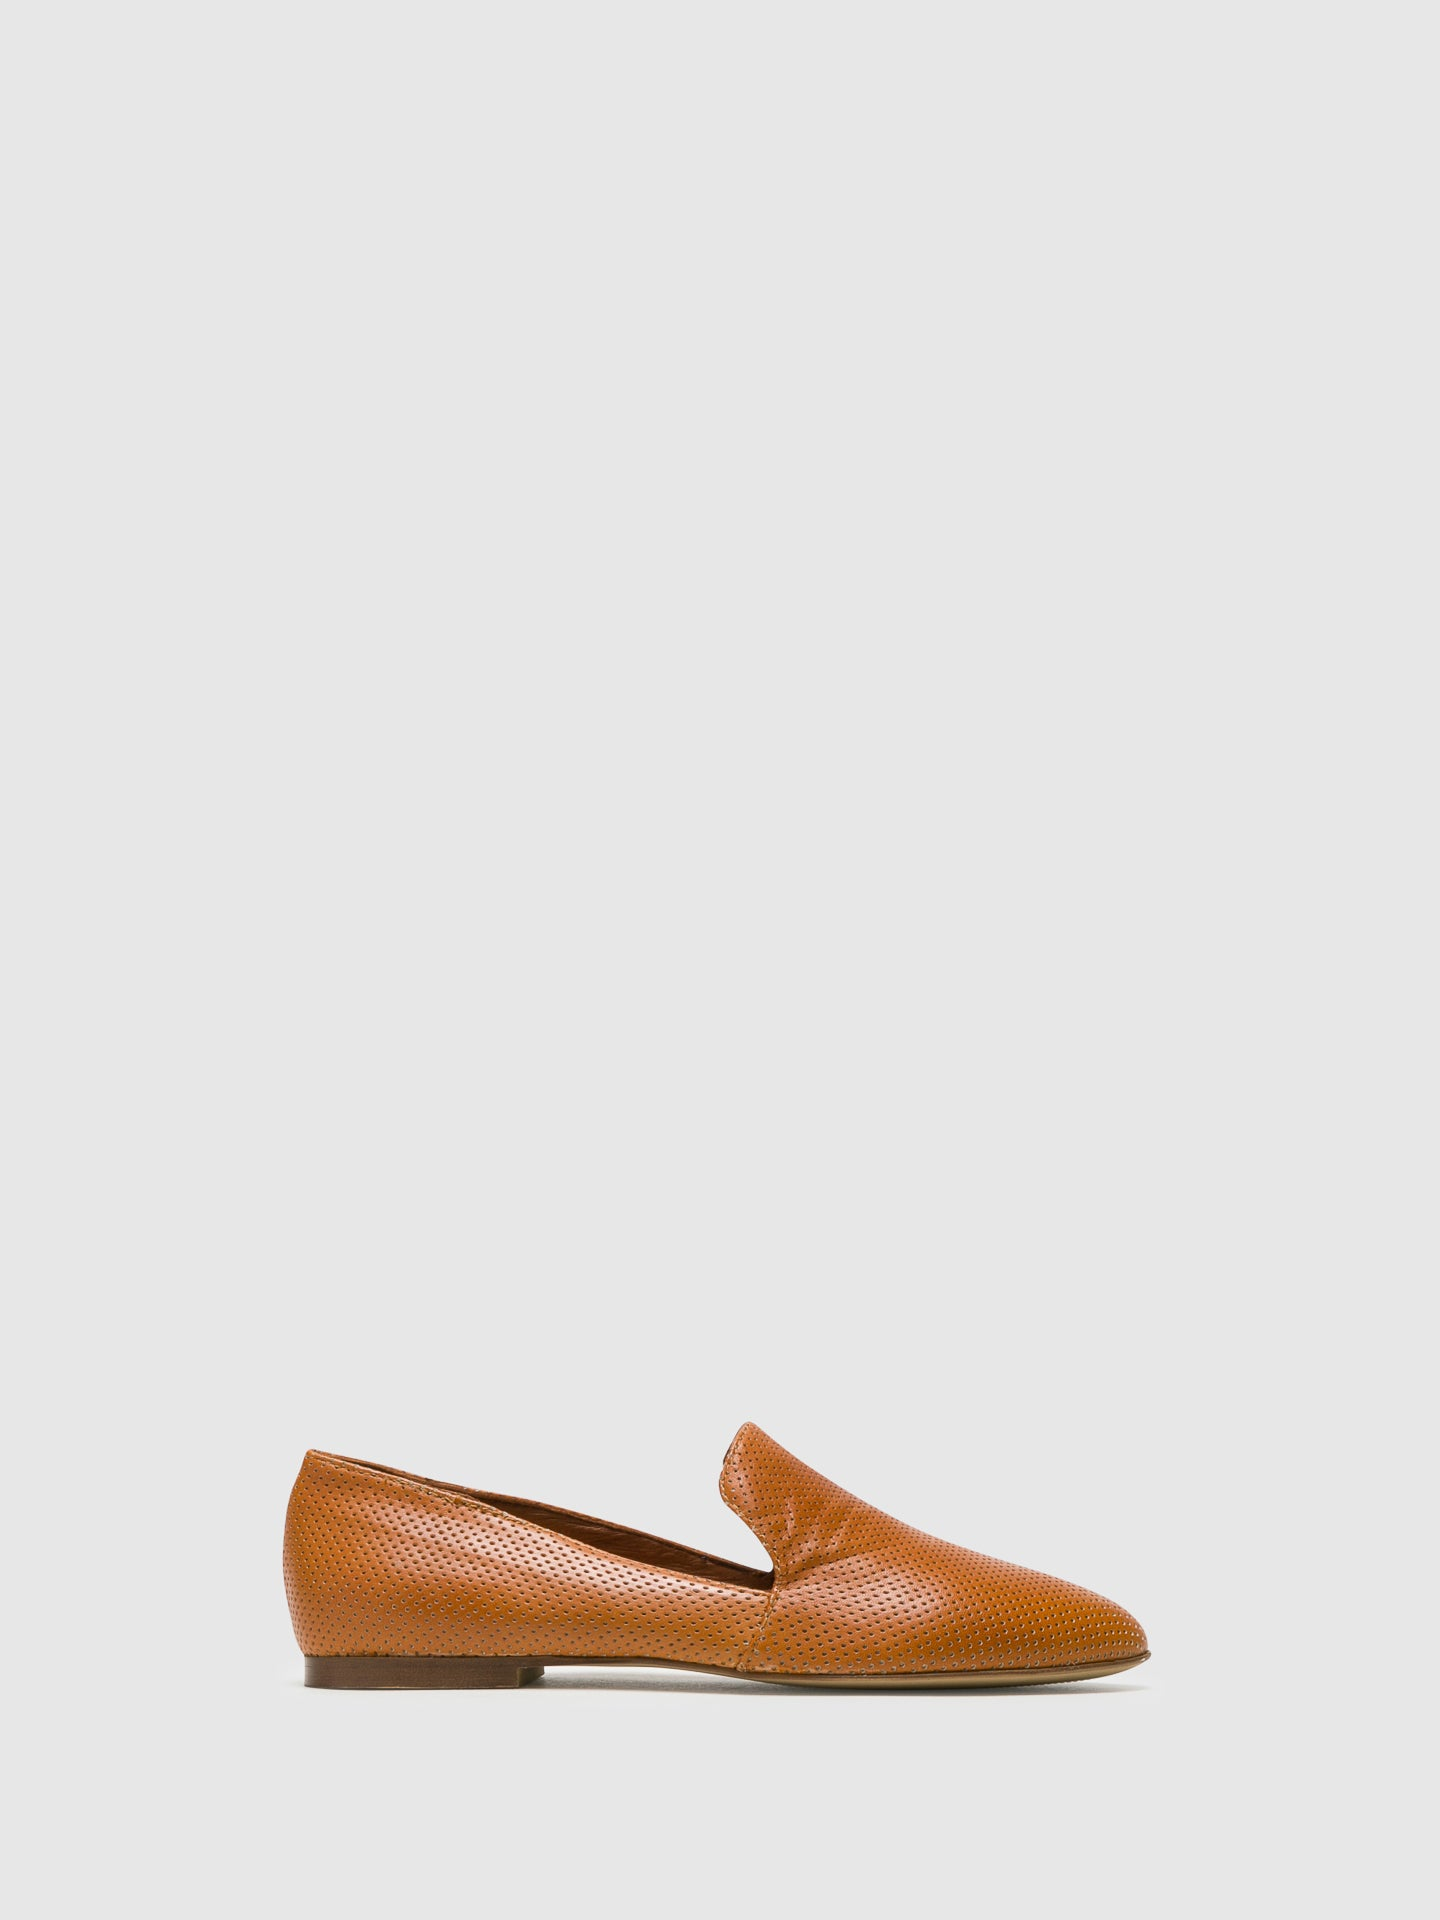 Bos&Co Peru Loafers Shoes